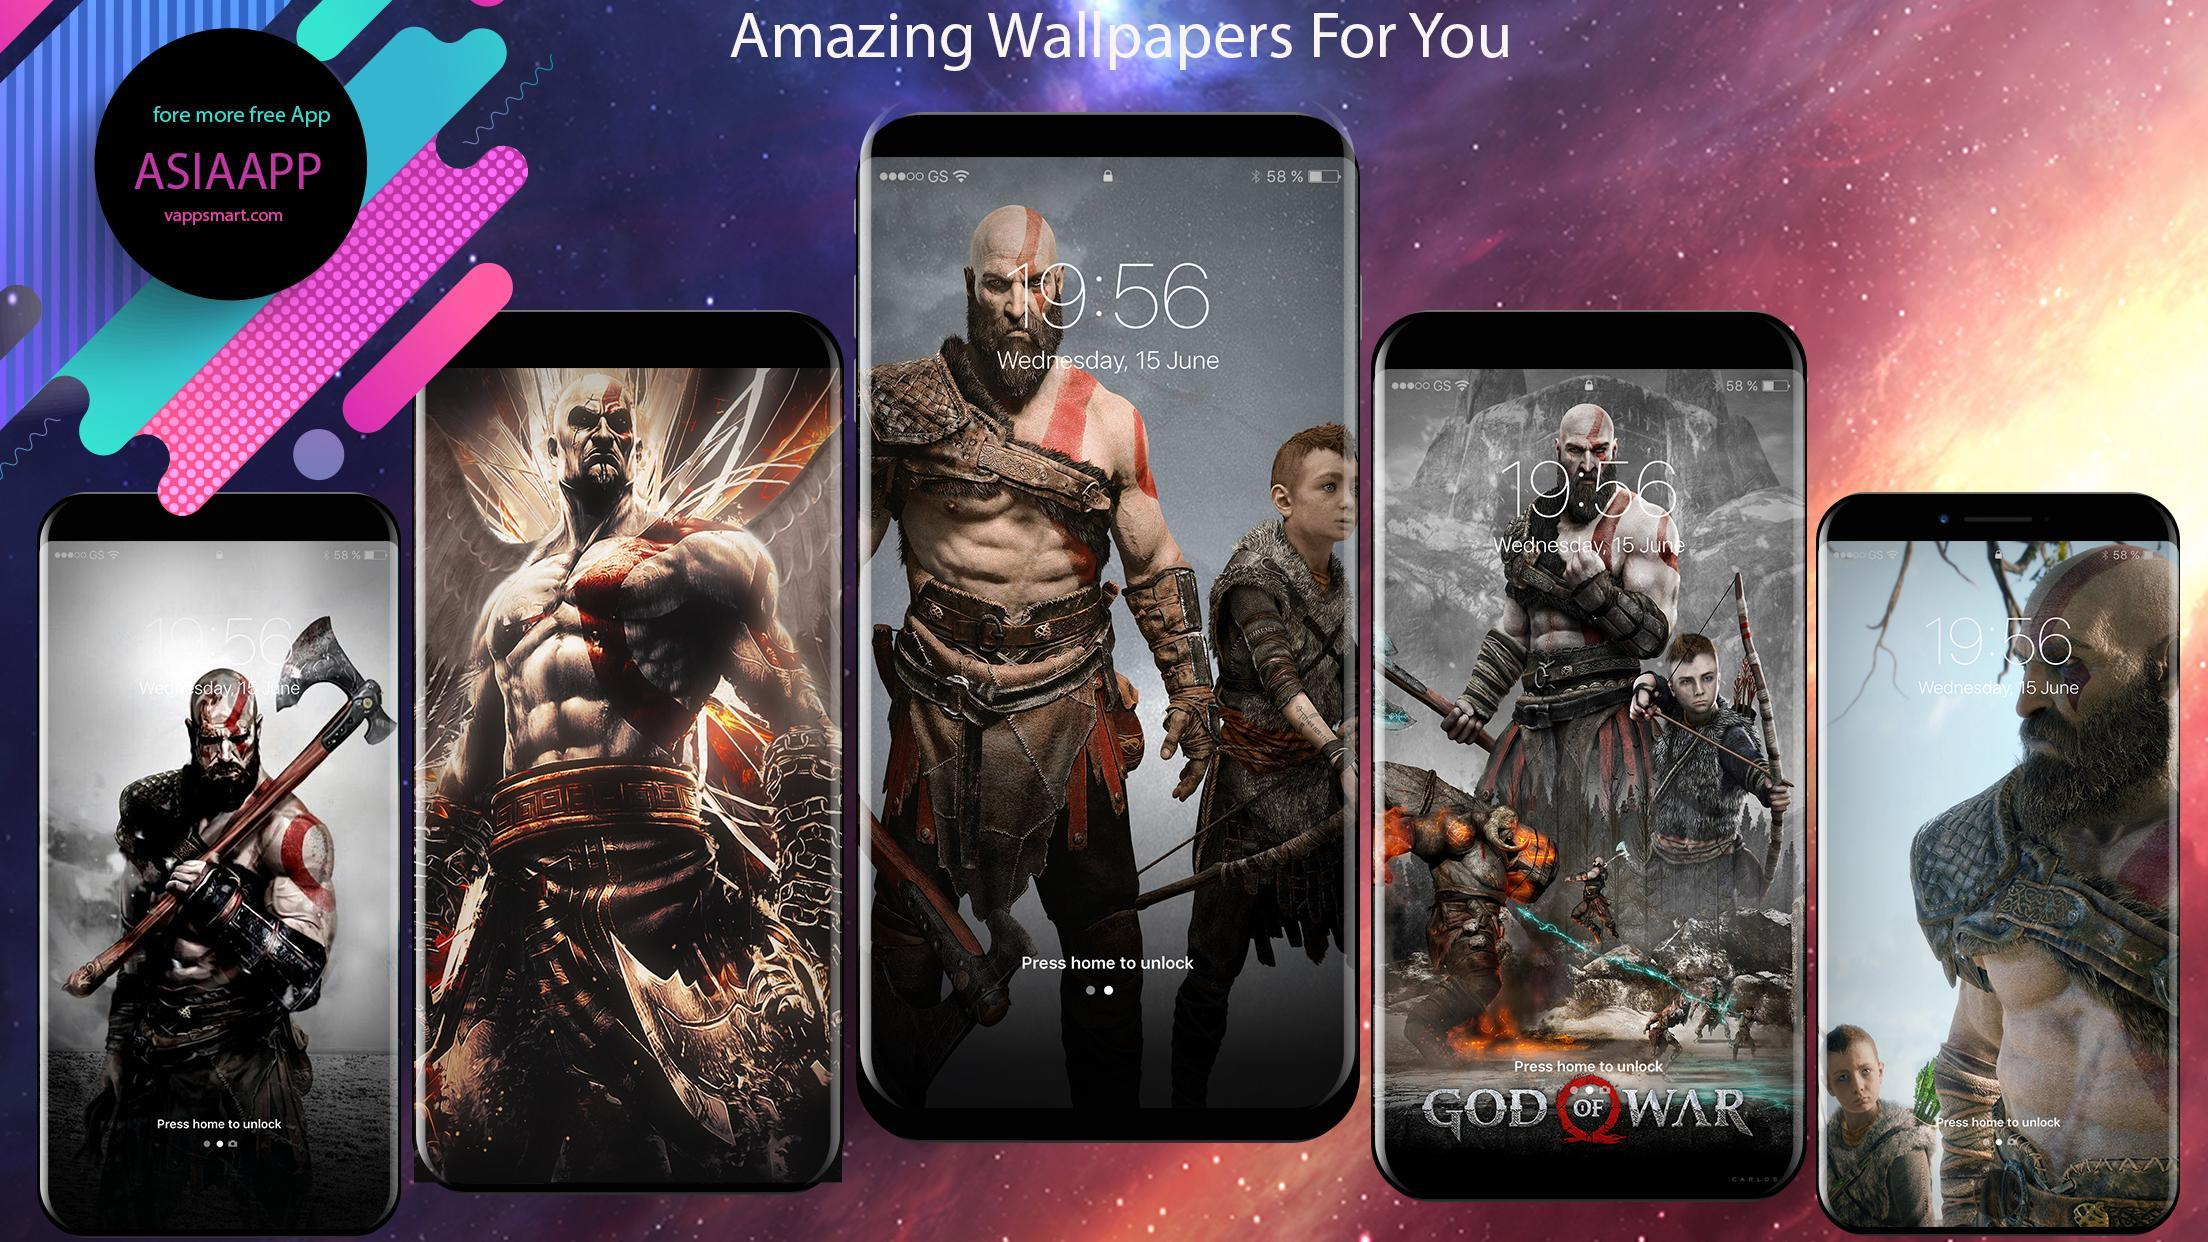 God Of War Wallpapers Hd 2018 For Android Apk Download